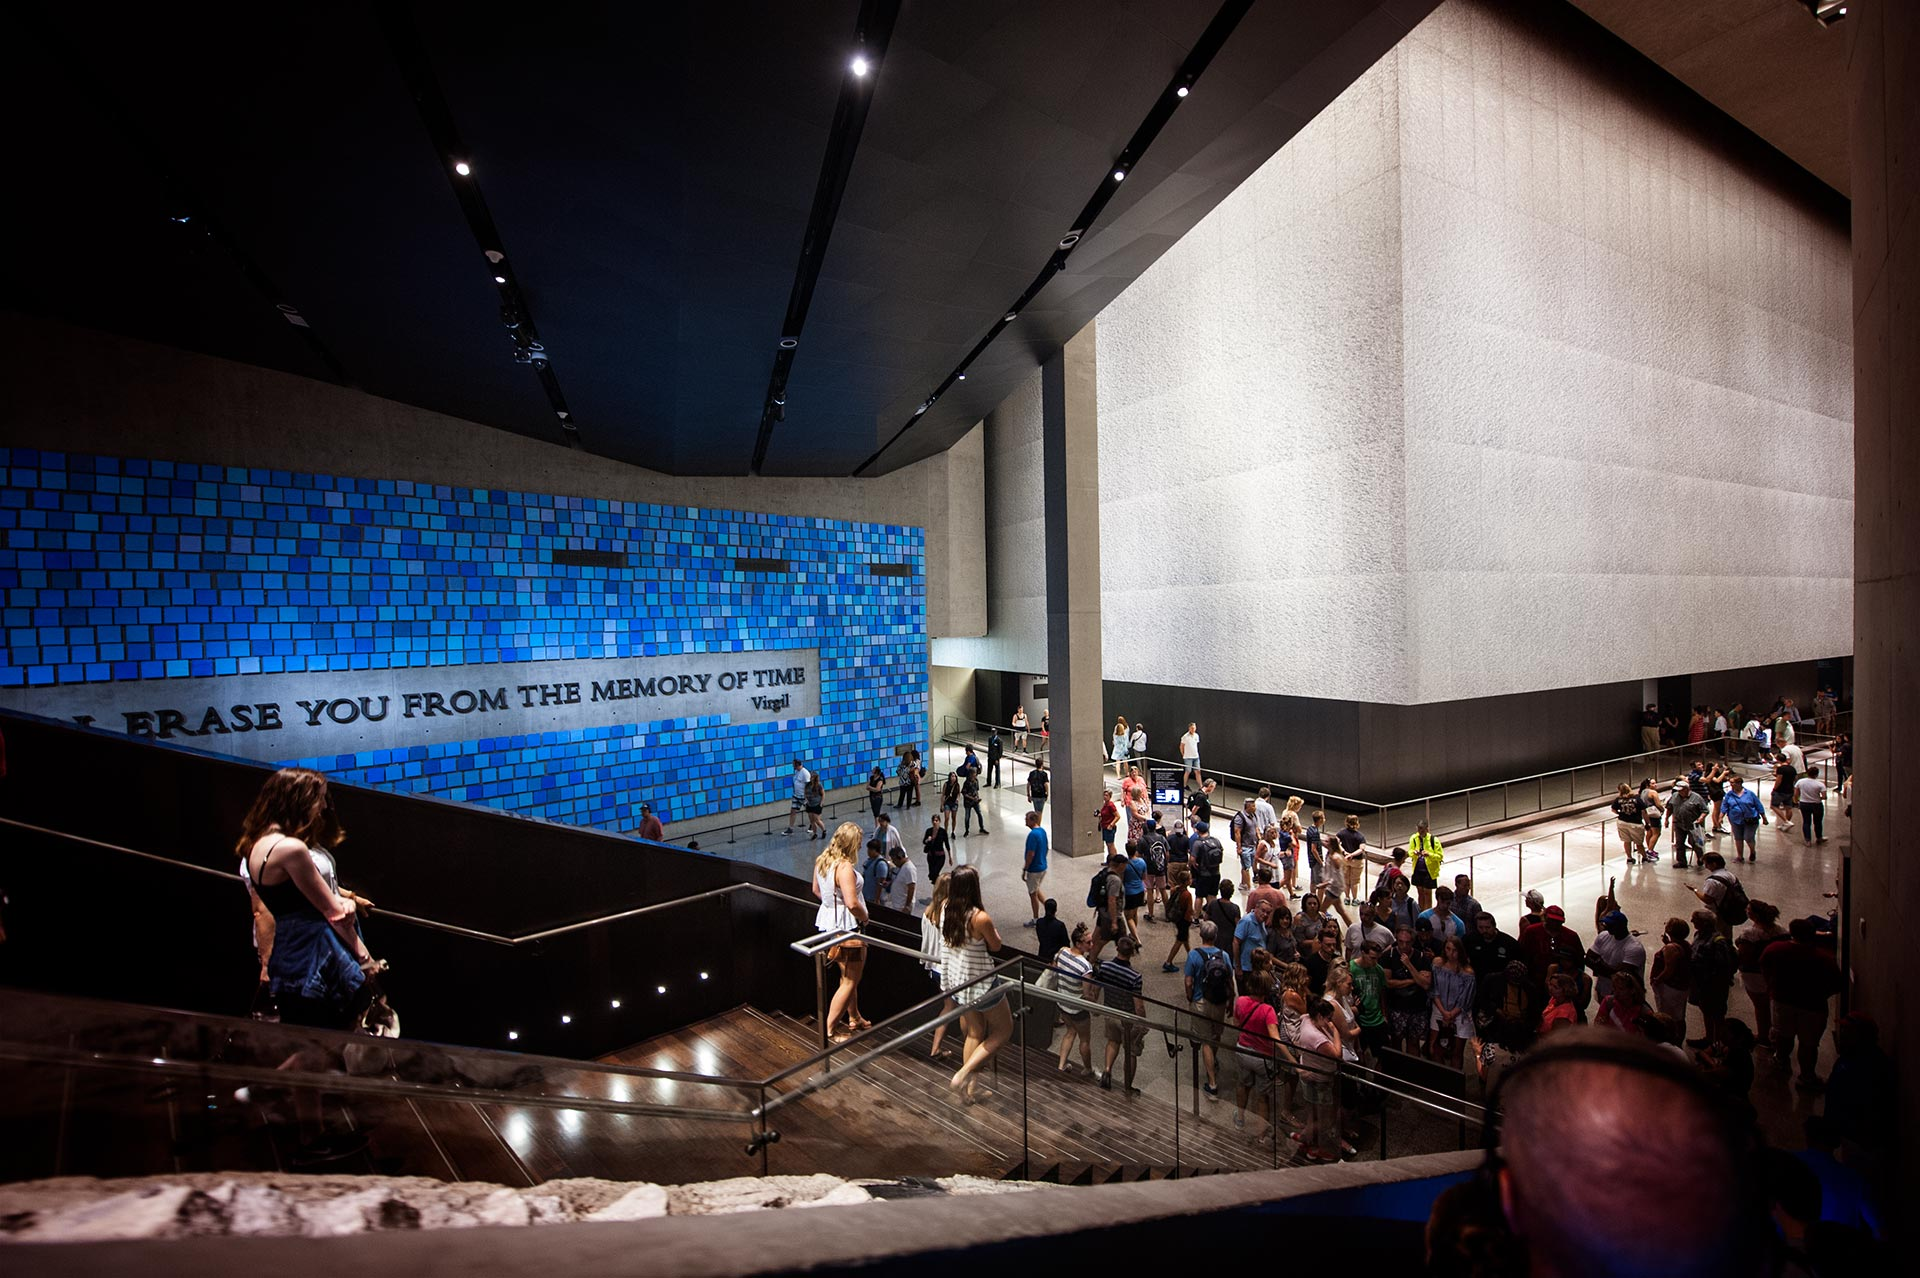 Descending Into the sacred grounds of the National September 11 Memorial Museum.